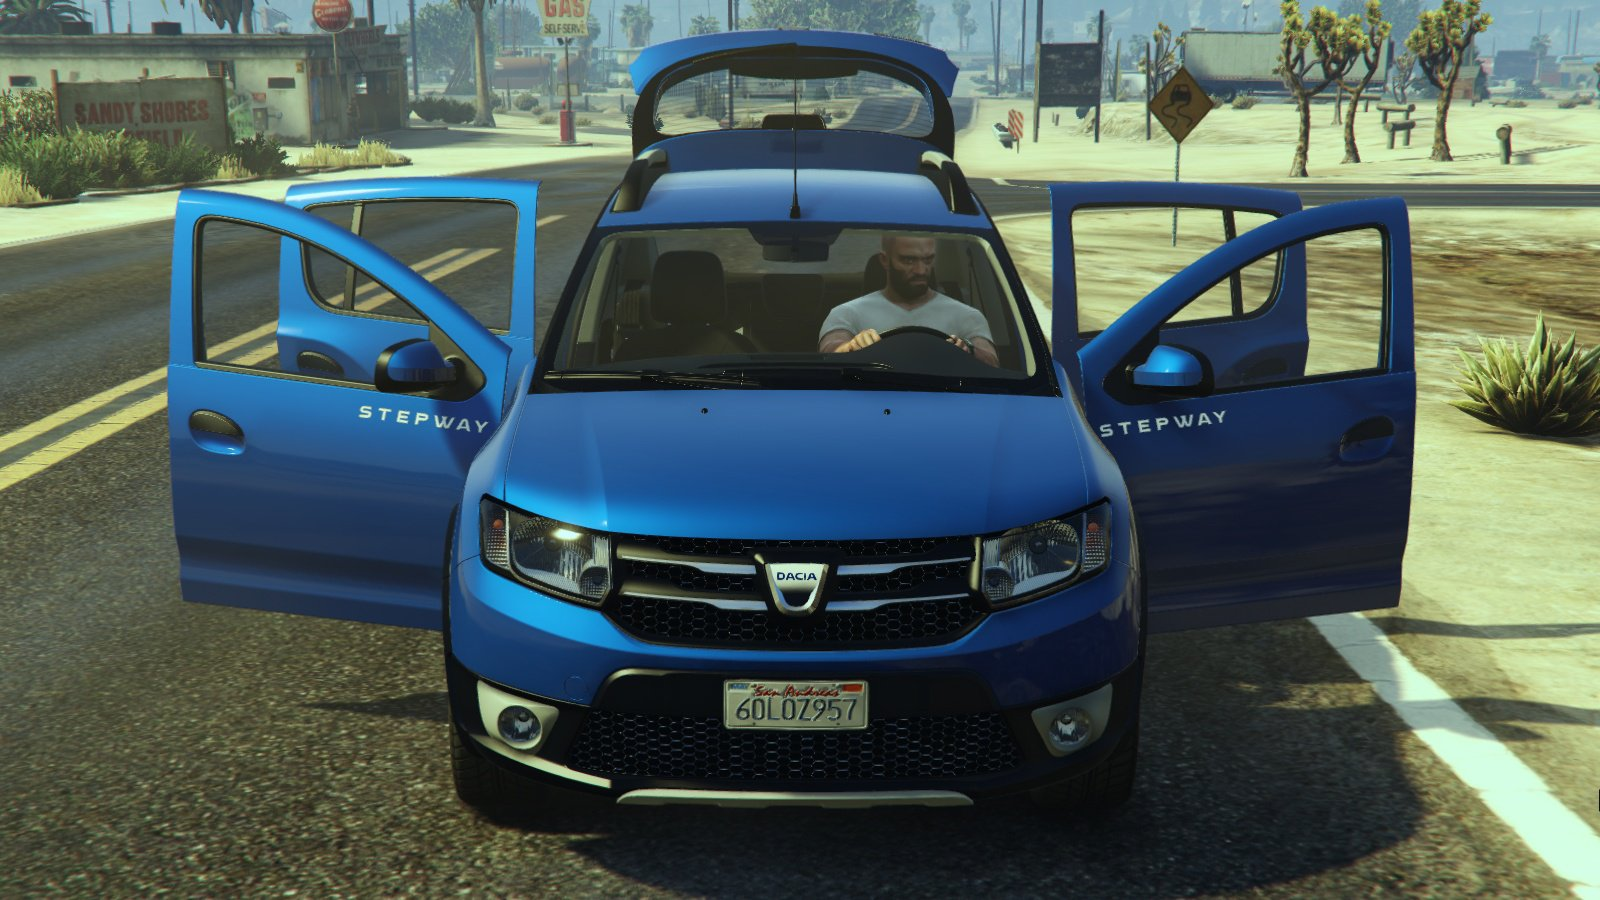 dacia sandero stepway 2014 vehicules pour gta v sur gta modding. Black Bedroom Furniture Sets. Home Design Ideas